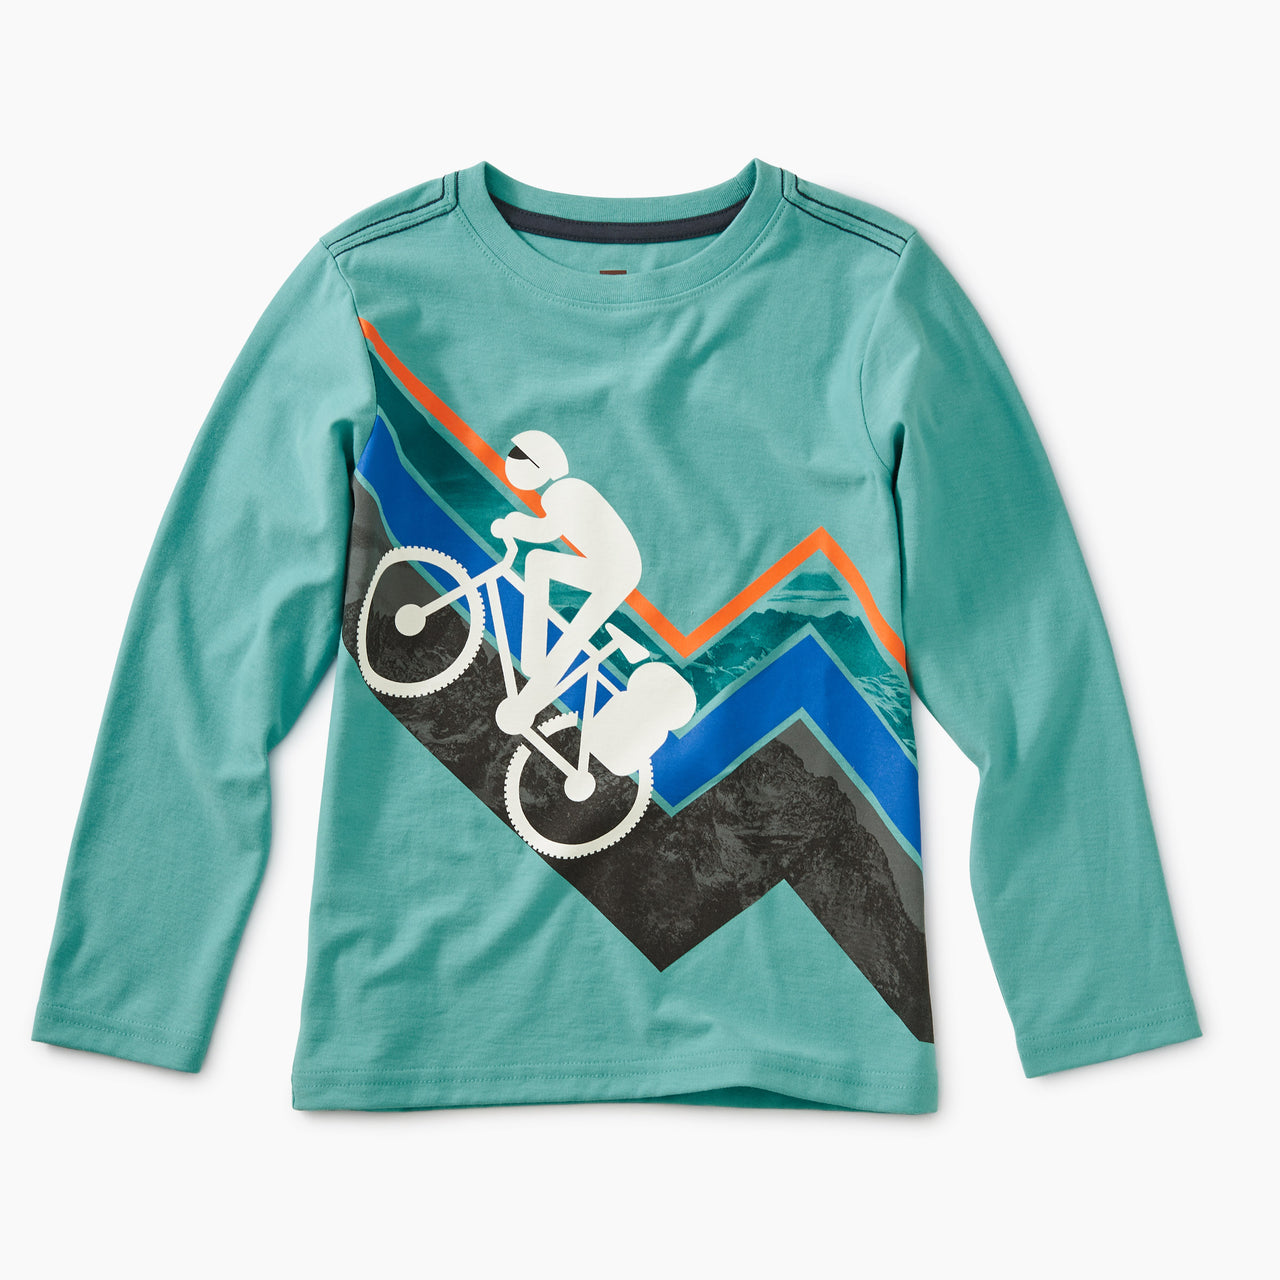 Mountain Biker Graphic Tee